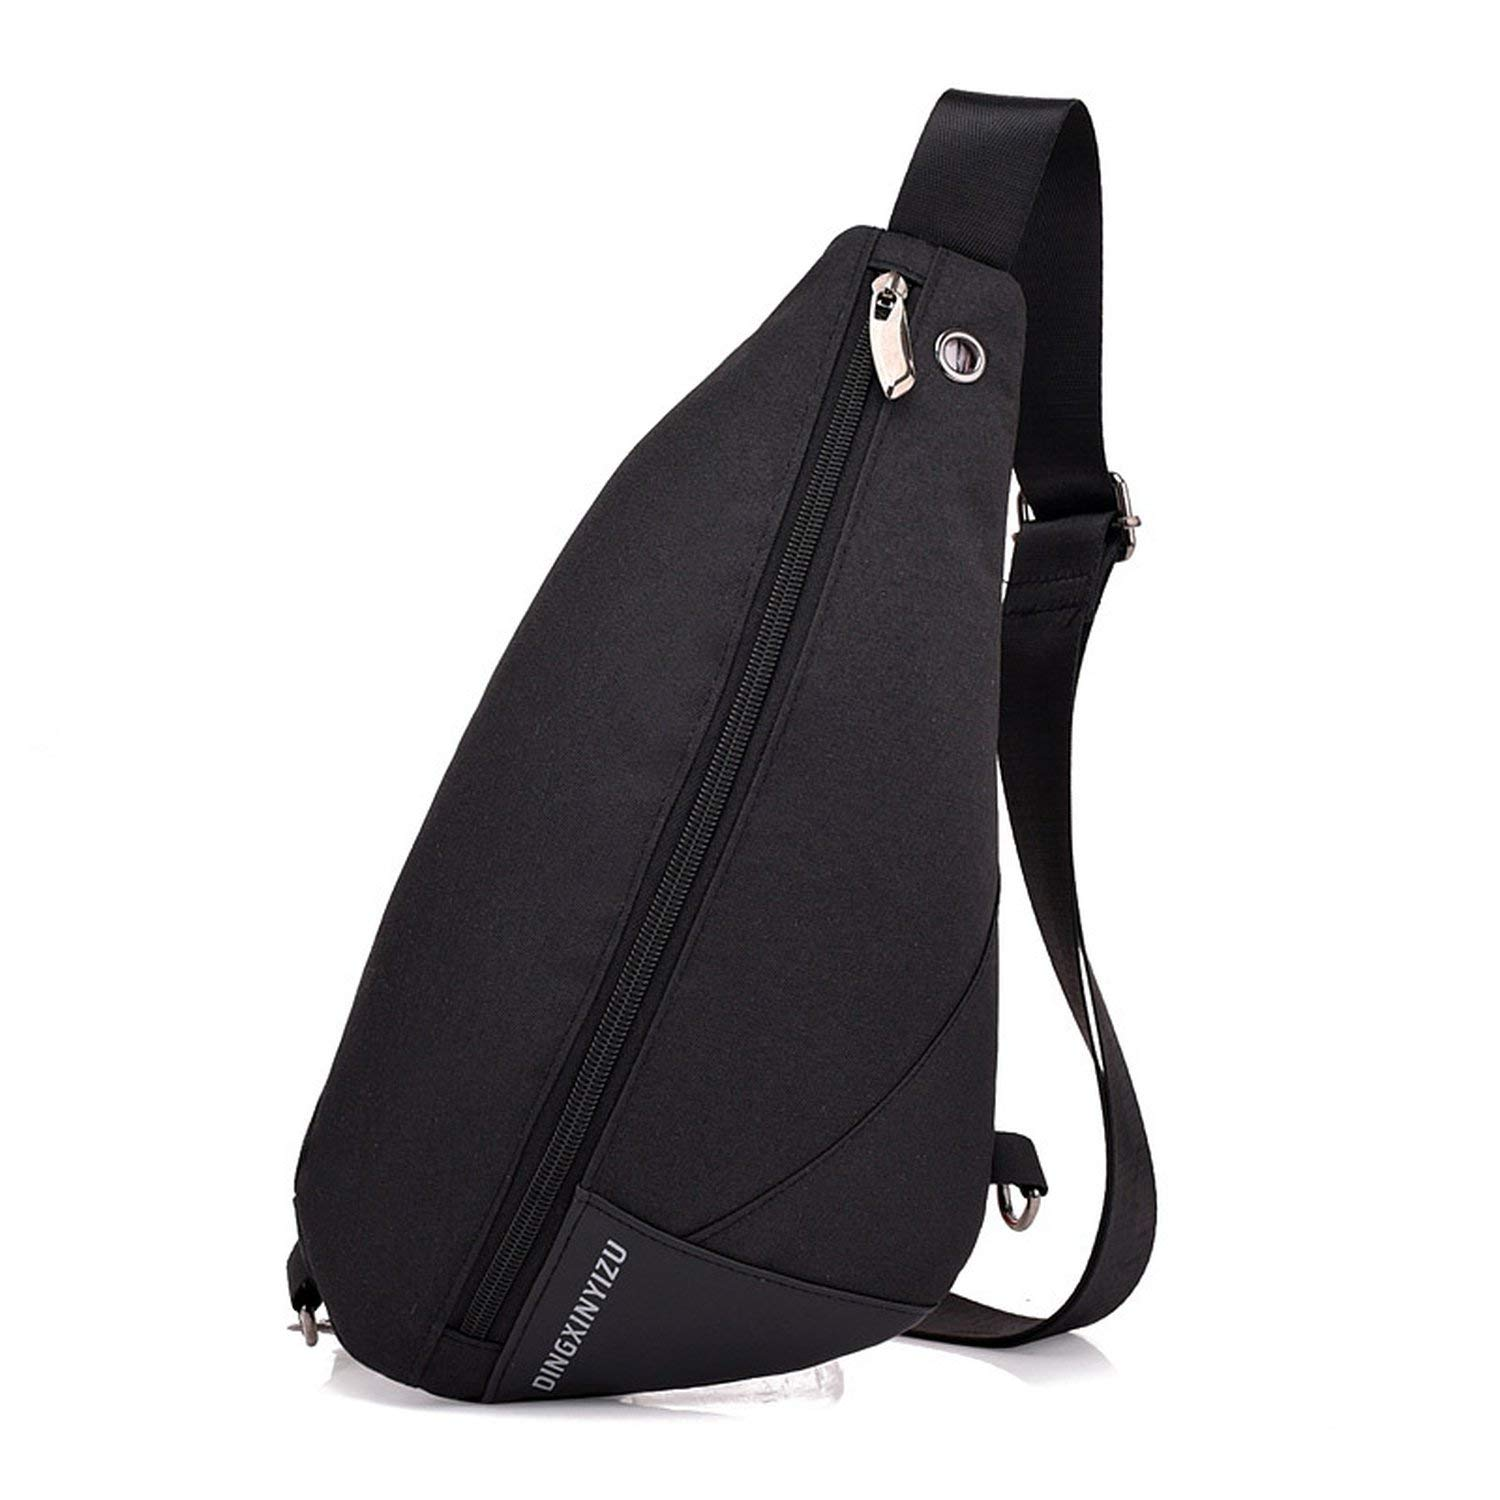 453272f4be2a Get Quotations · Cross Body Messenger Bag Shoulder Backpack Travel Rucksack  Sling Bag